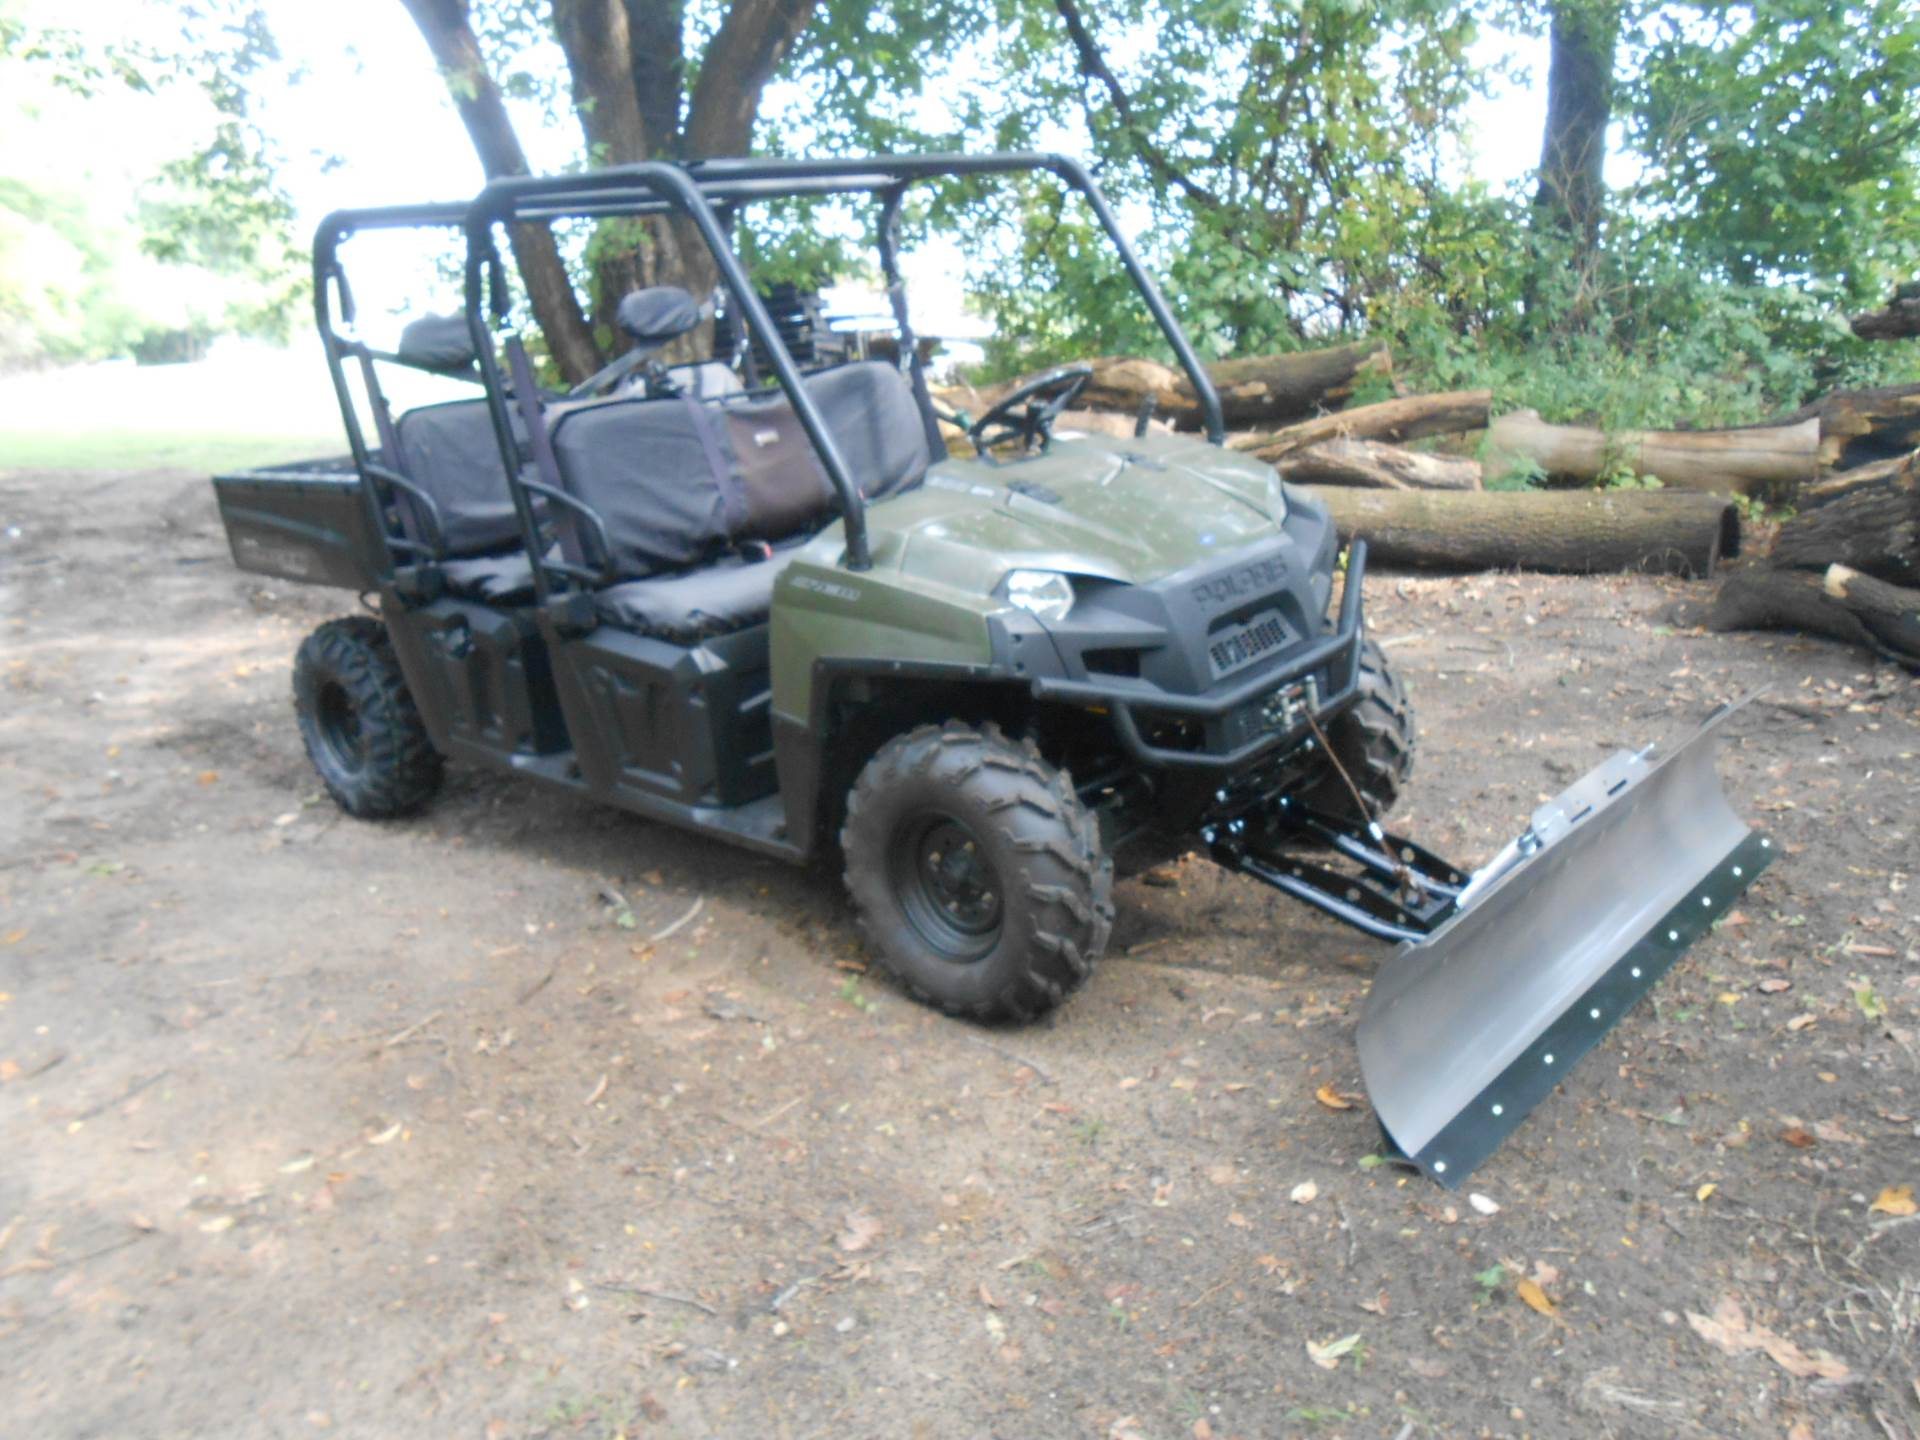 2014 Polaris Ranger Crew® 800 EFI in Howell, Michigan - Photo 2